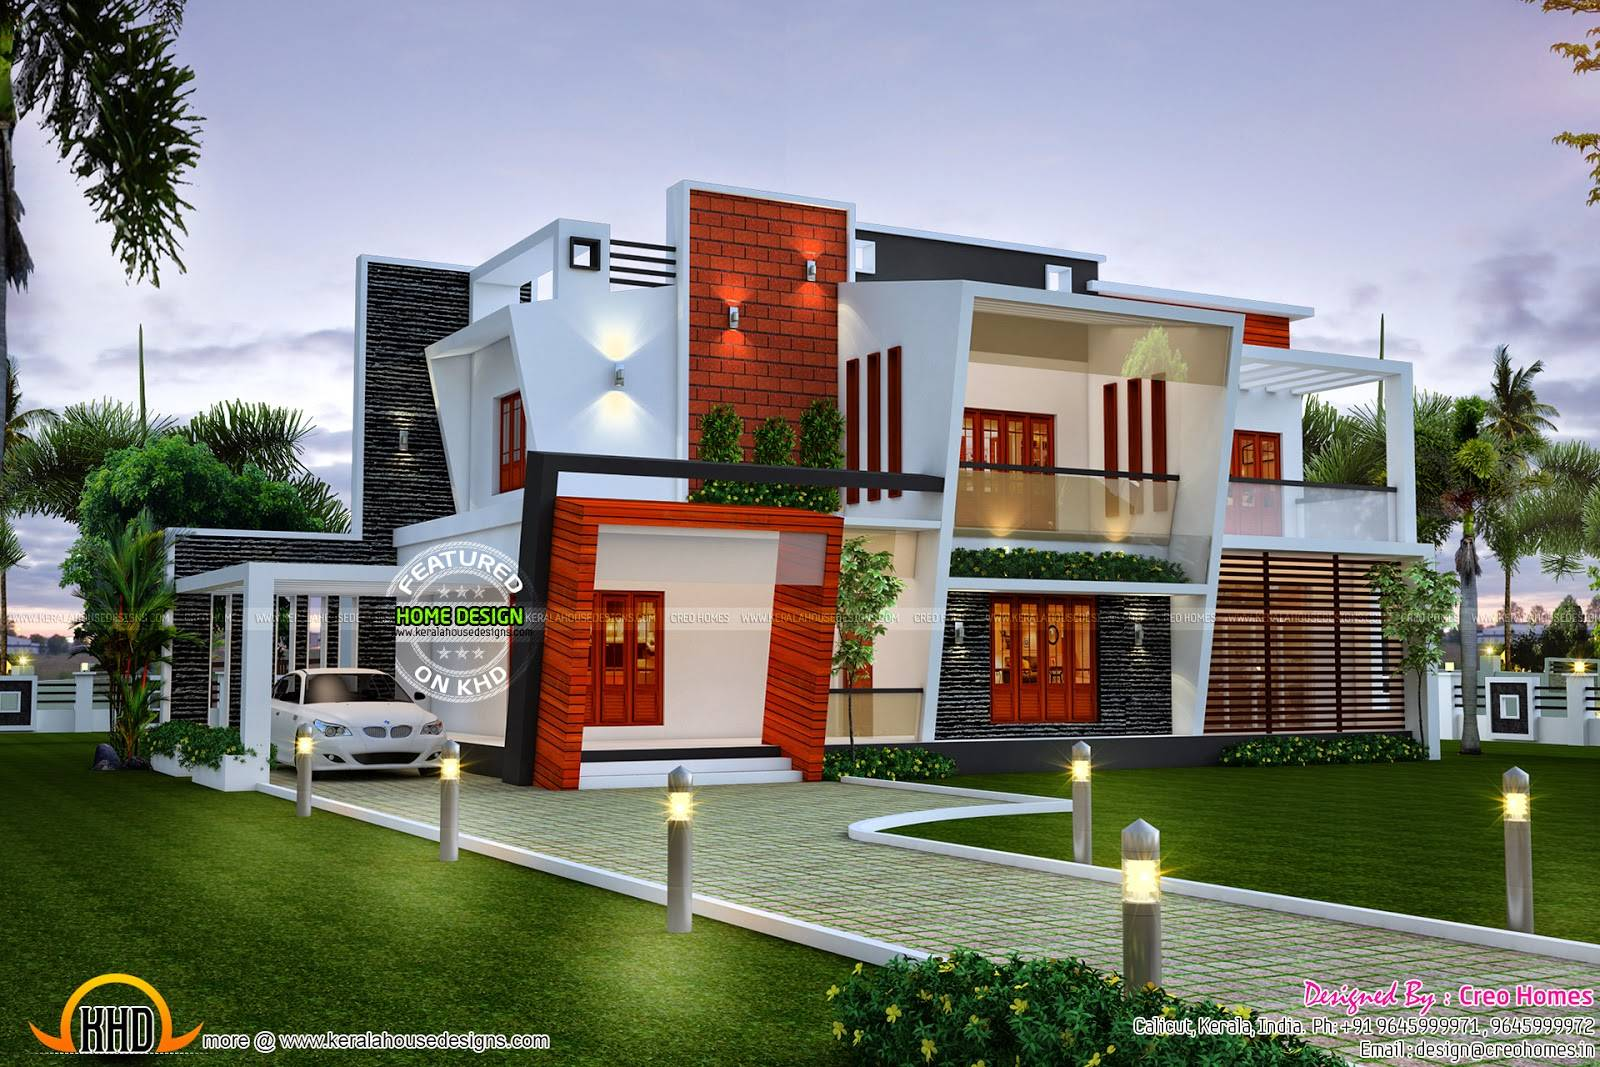 These Year Contemporary House Ideas Are Exploding 24 Pictures Home Plans Blueprints